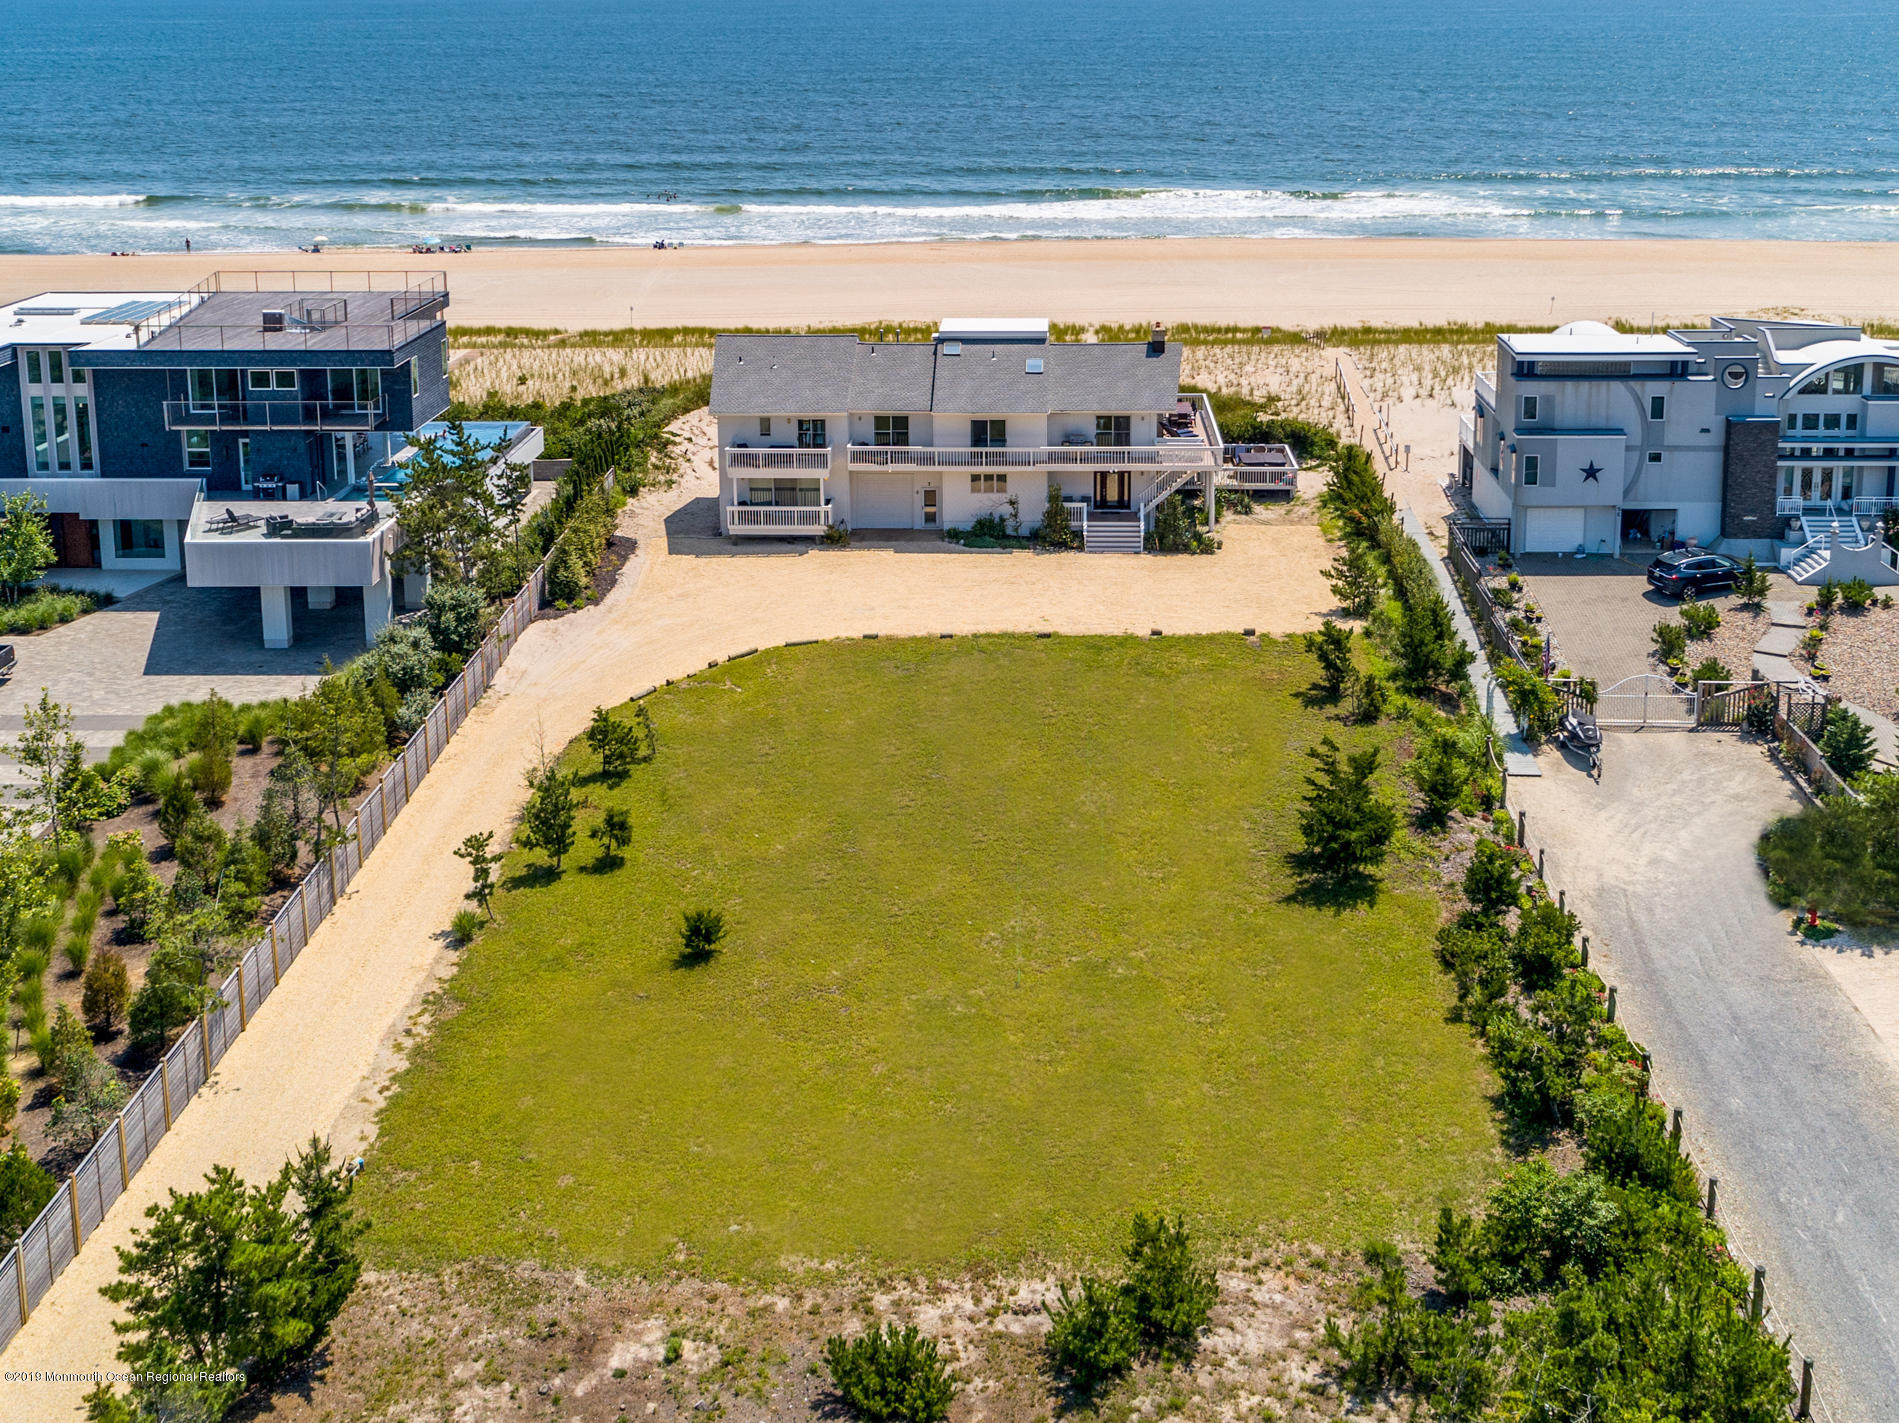 Oceanfront Homes for Sale : Jersey Shore